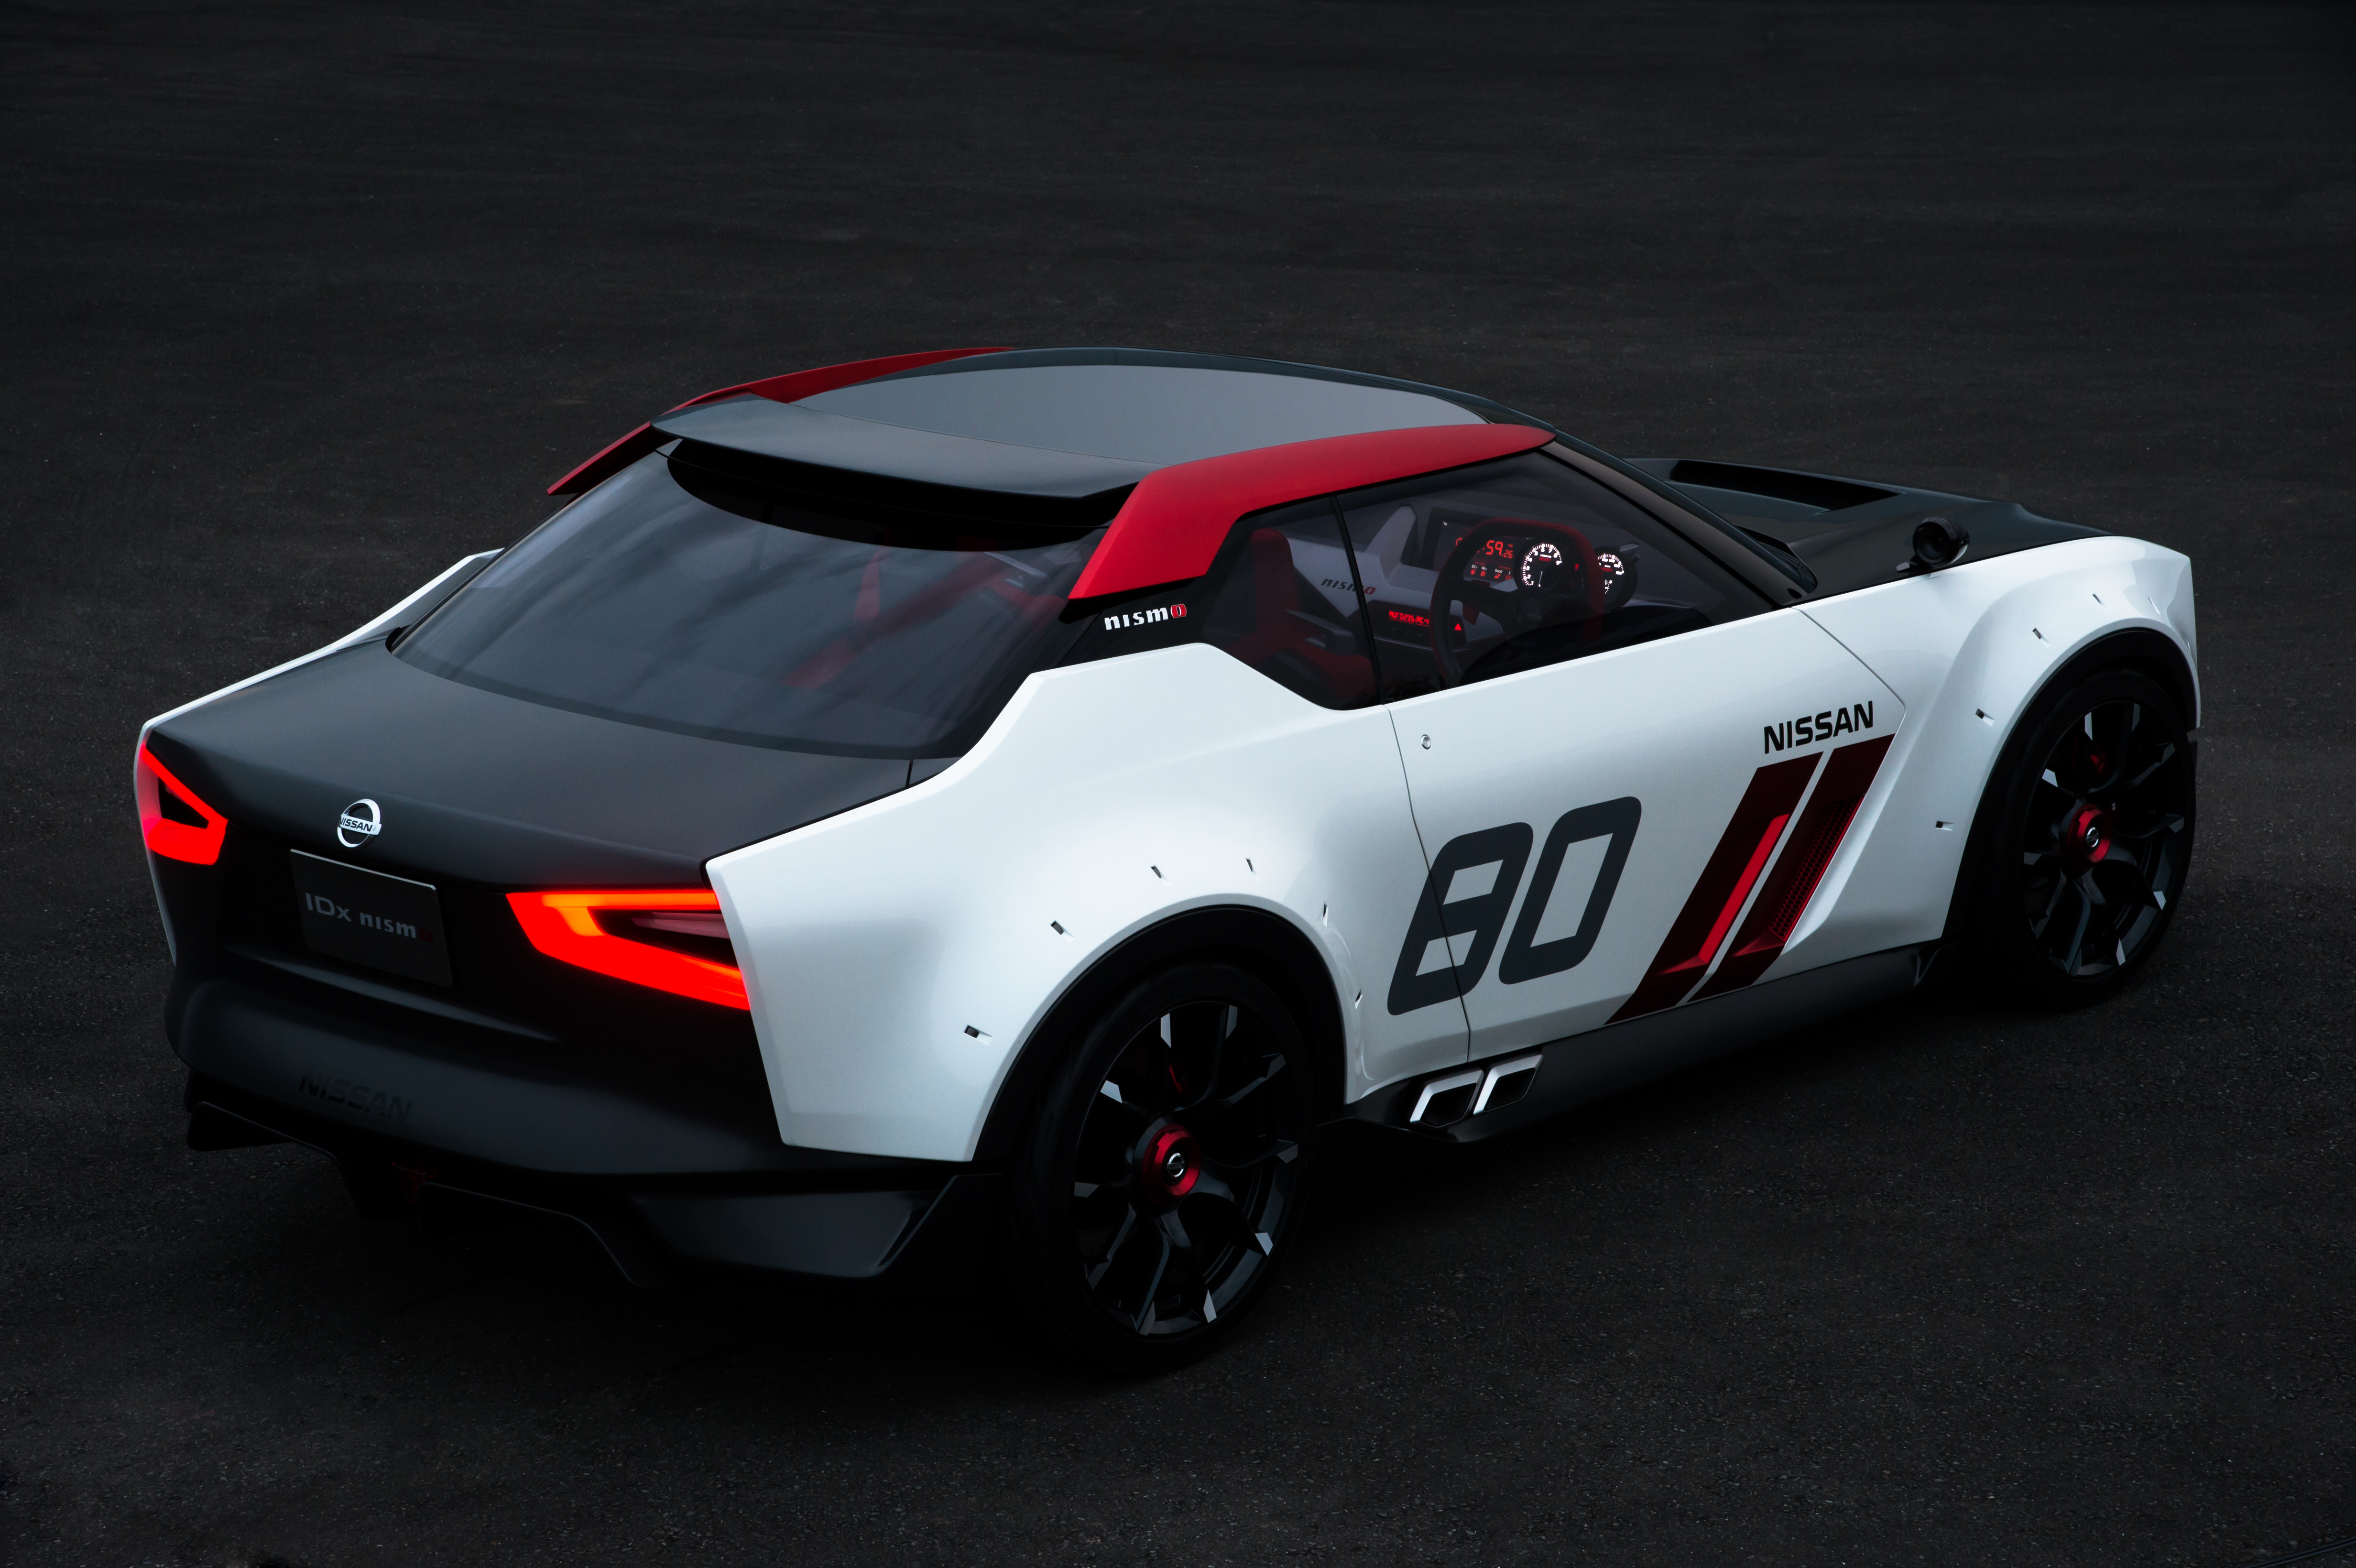 Nissan IDx Freeflow & Nismo – Datsun 510 reborn? Paul Tan ...